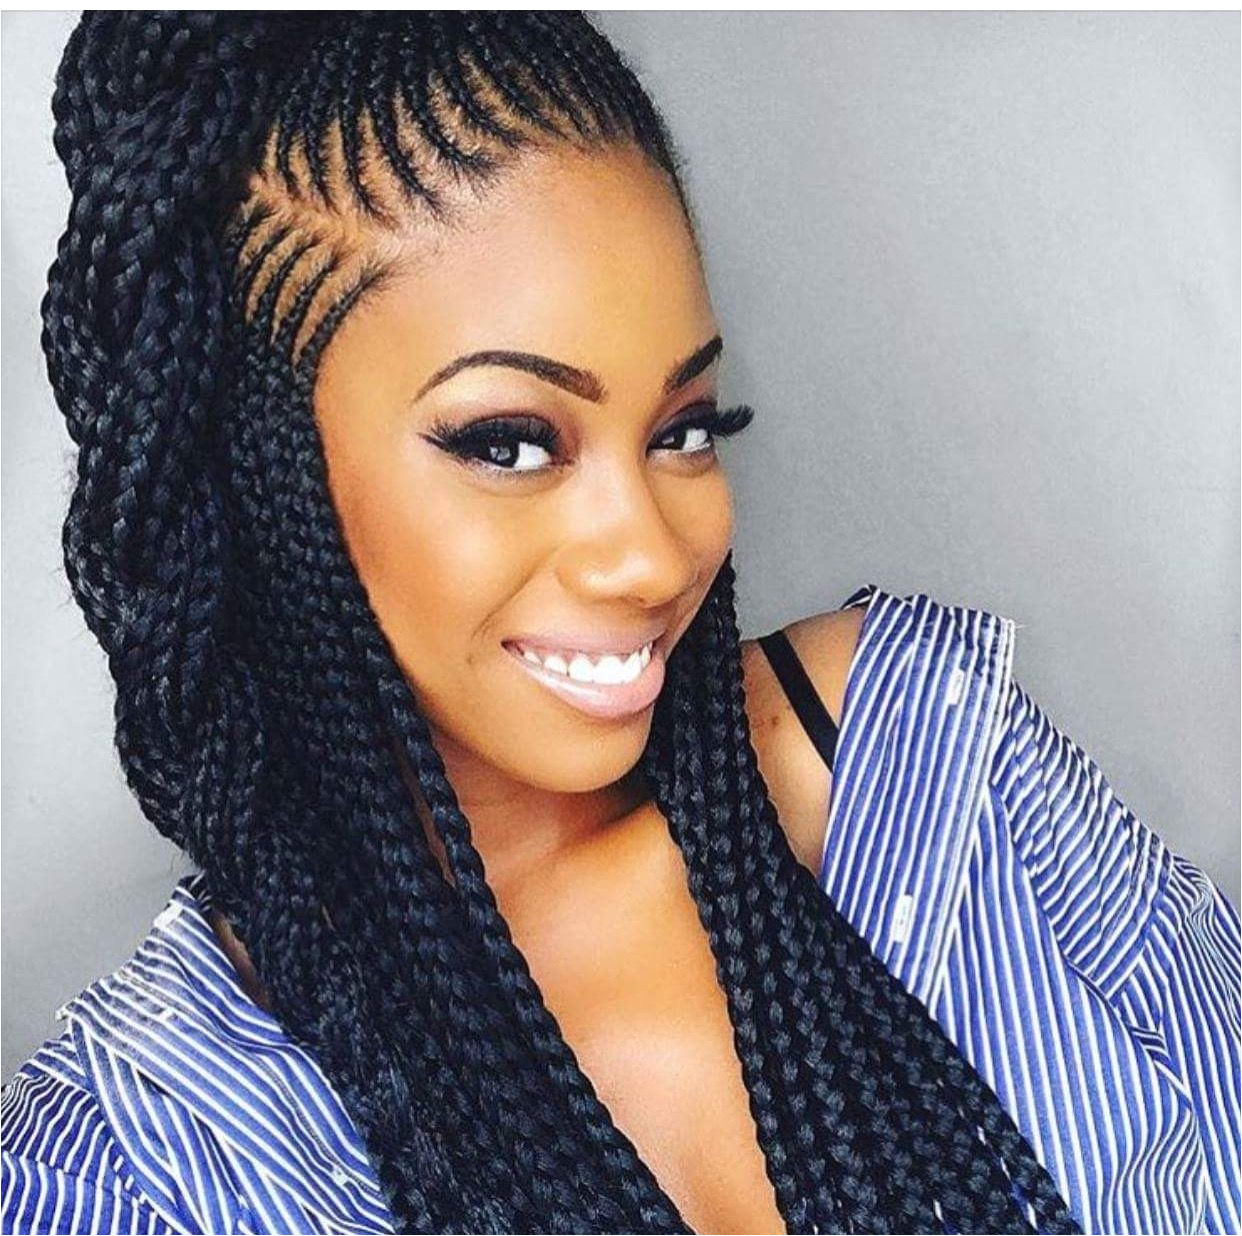 African Hairstyles Nice Hairstyles Female Hairstyles Hairstyle Ideas Braided Hairstyles For Black